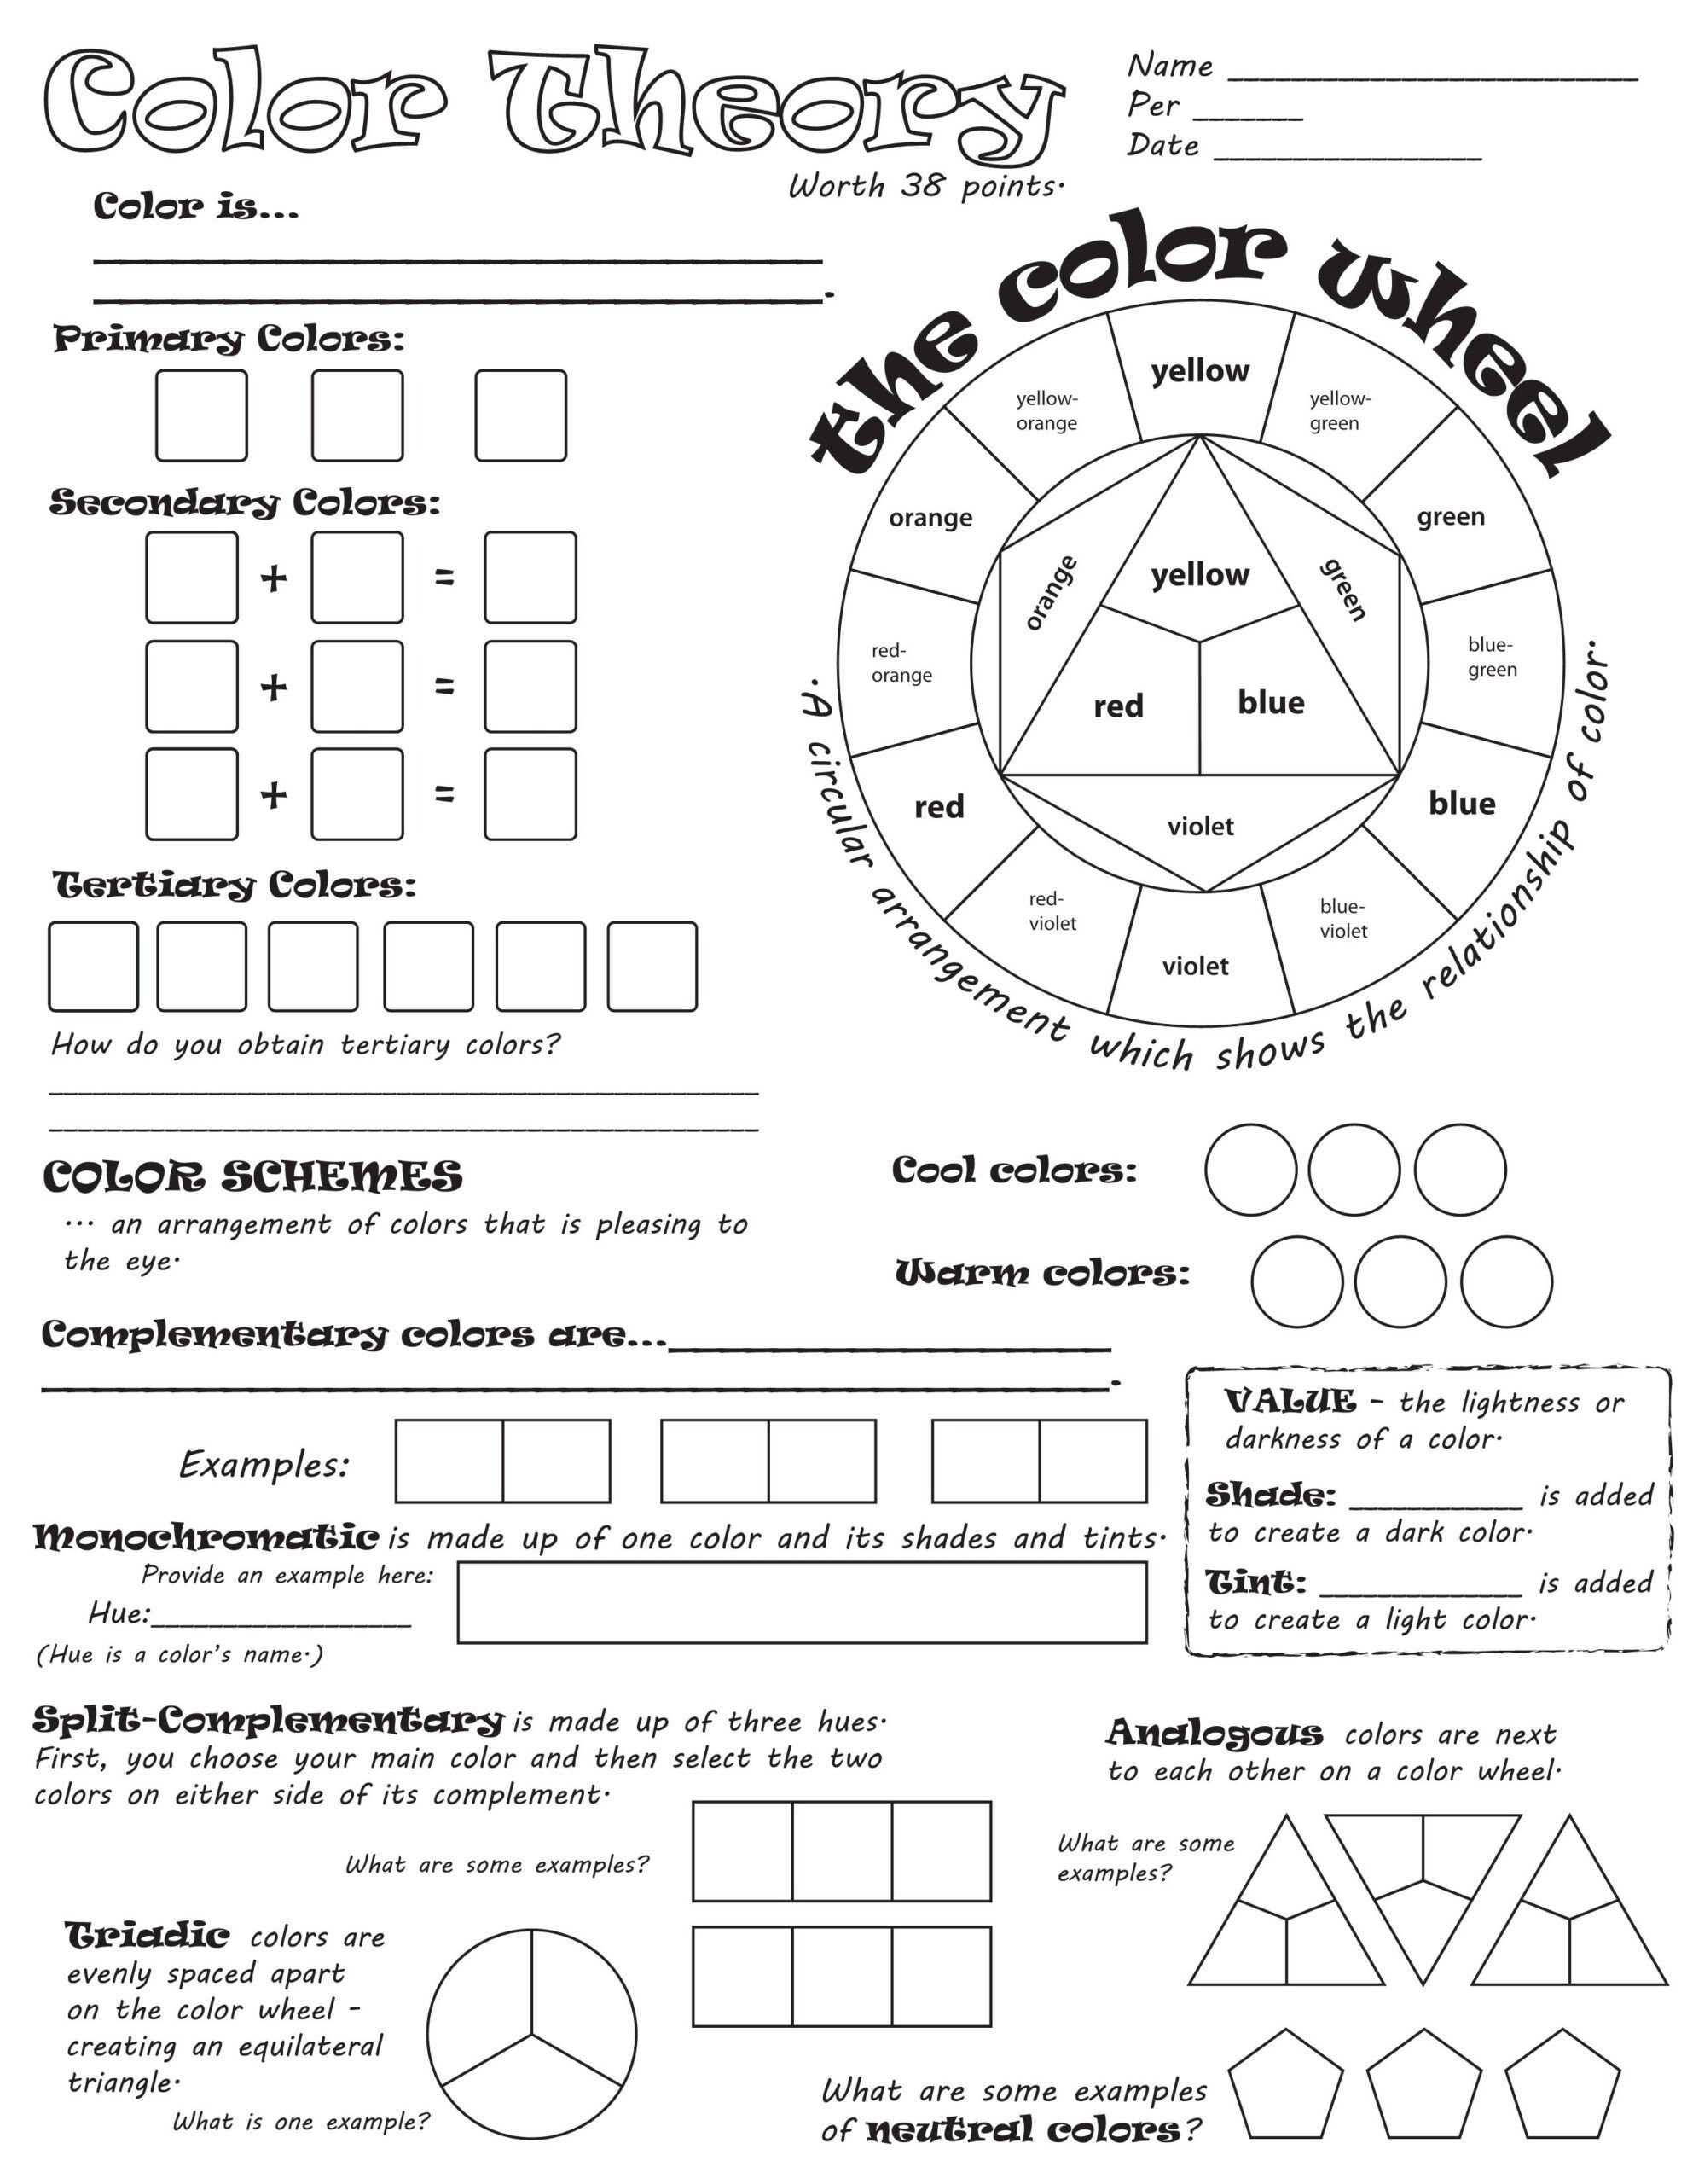 worksheet art education lessons elements of color 5th grade math 2